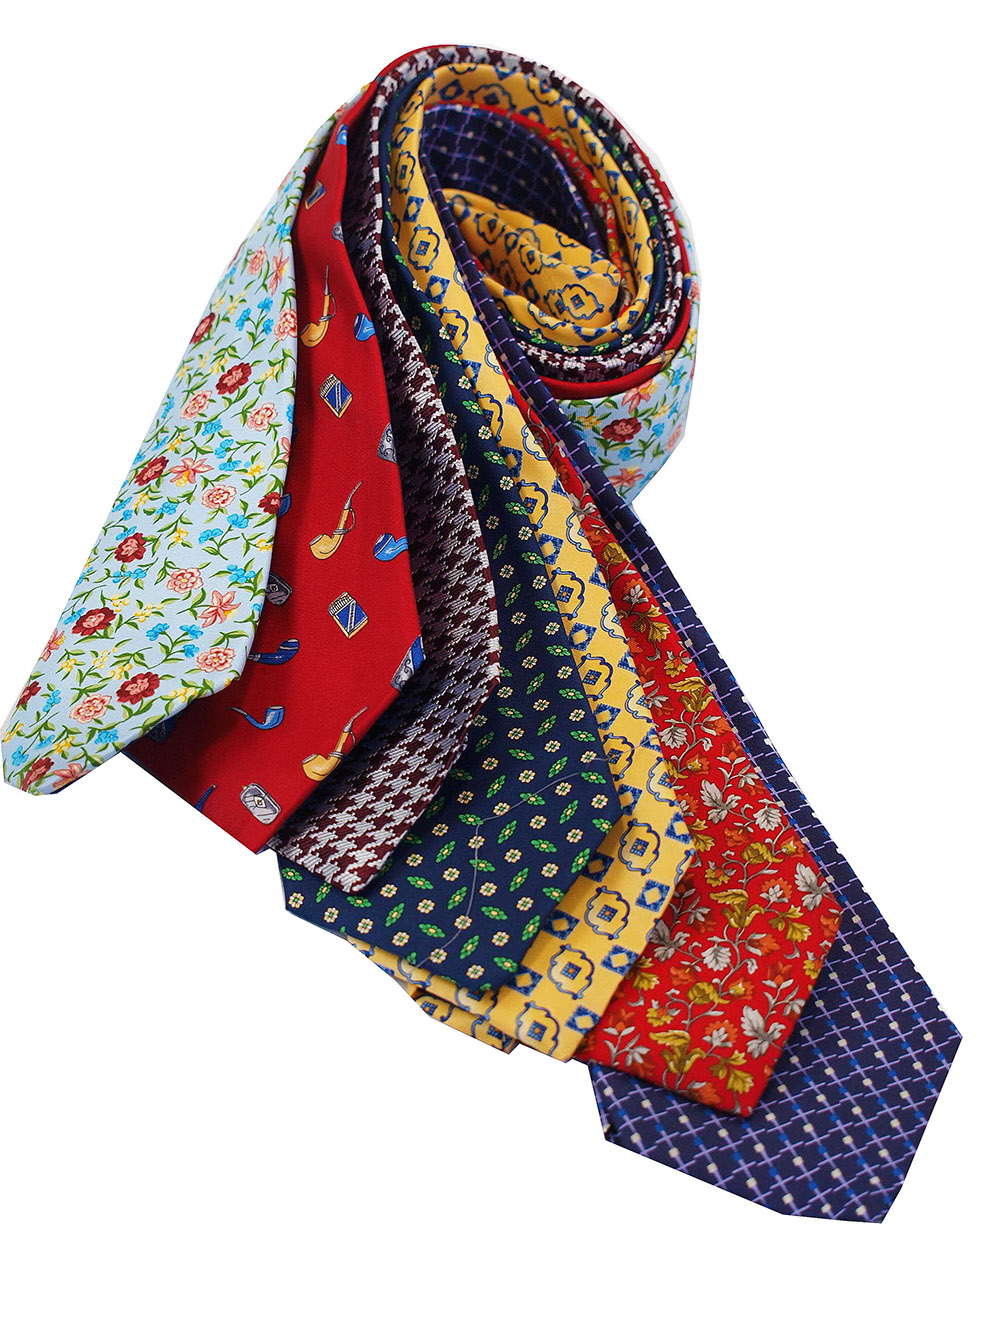 Cavenagh of London 7Piece 100% Pure Silk Ties Made in UK (233D)RRP£139.99